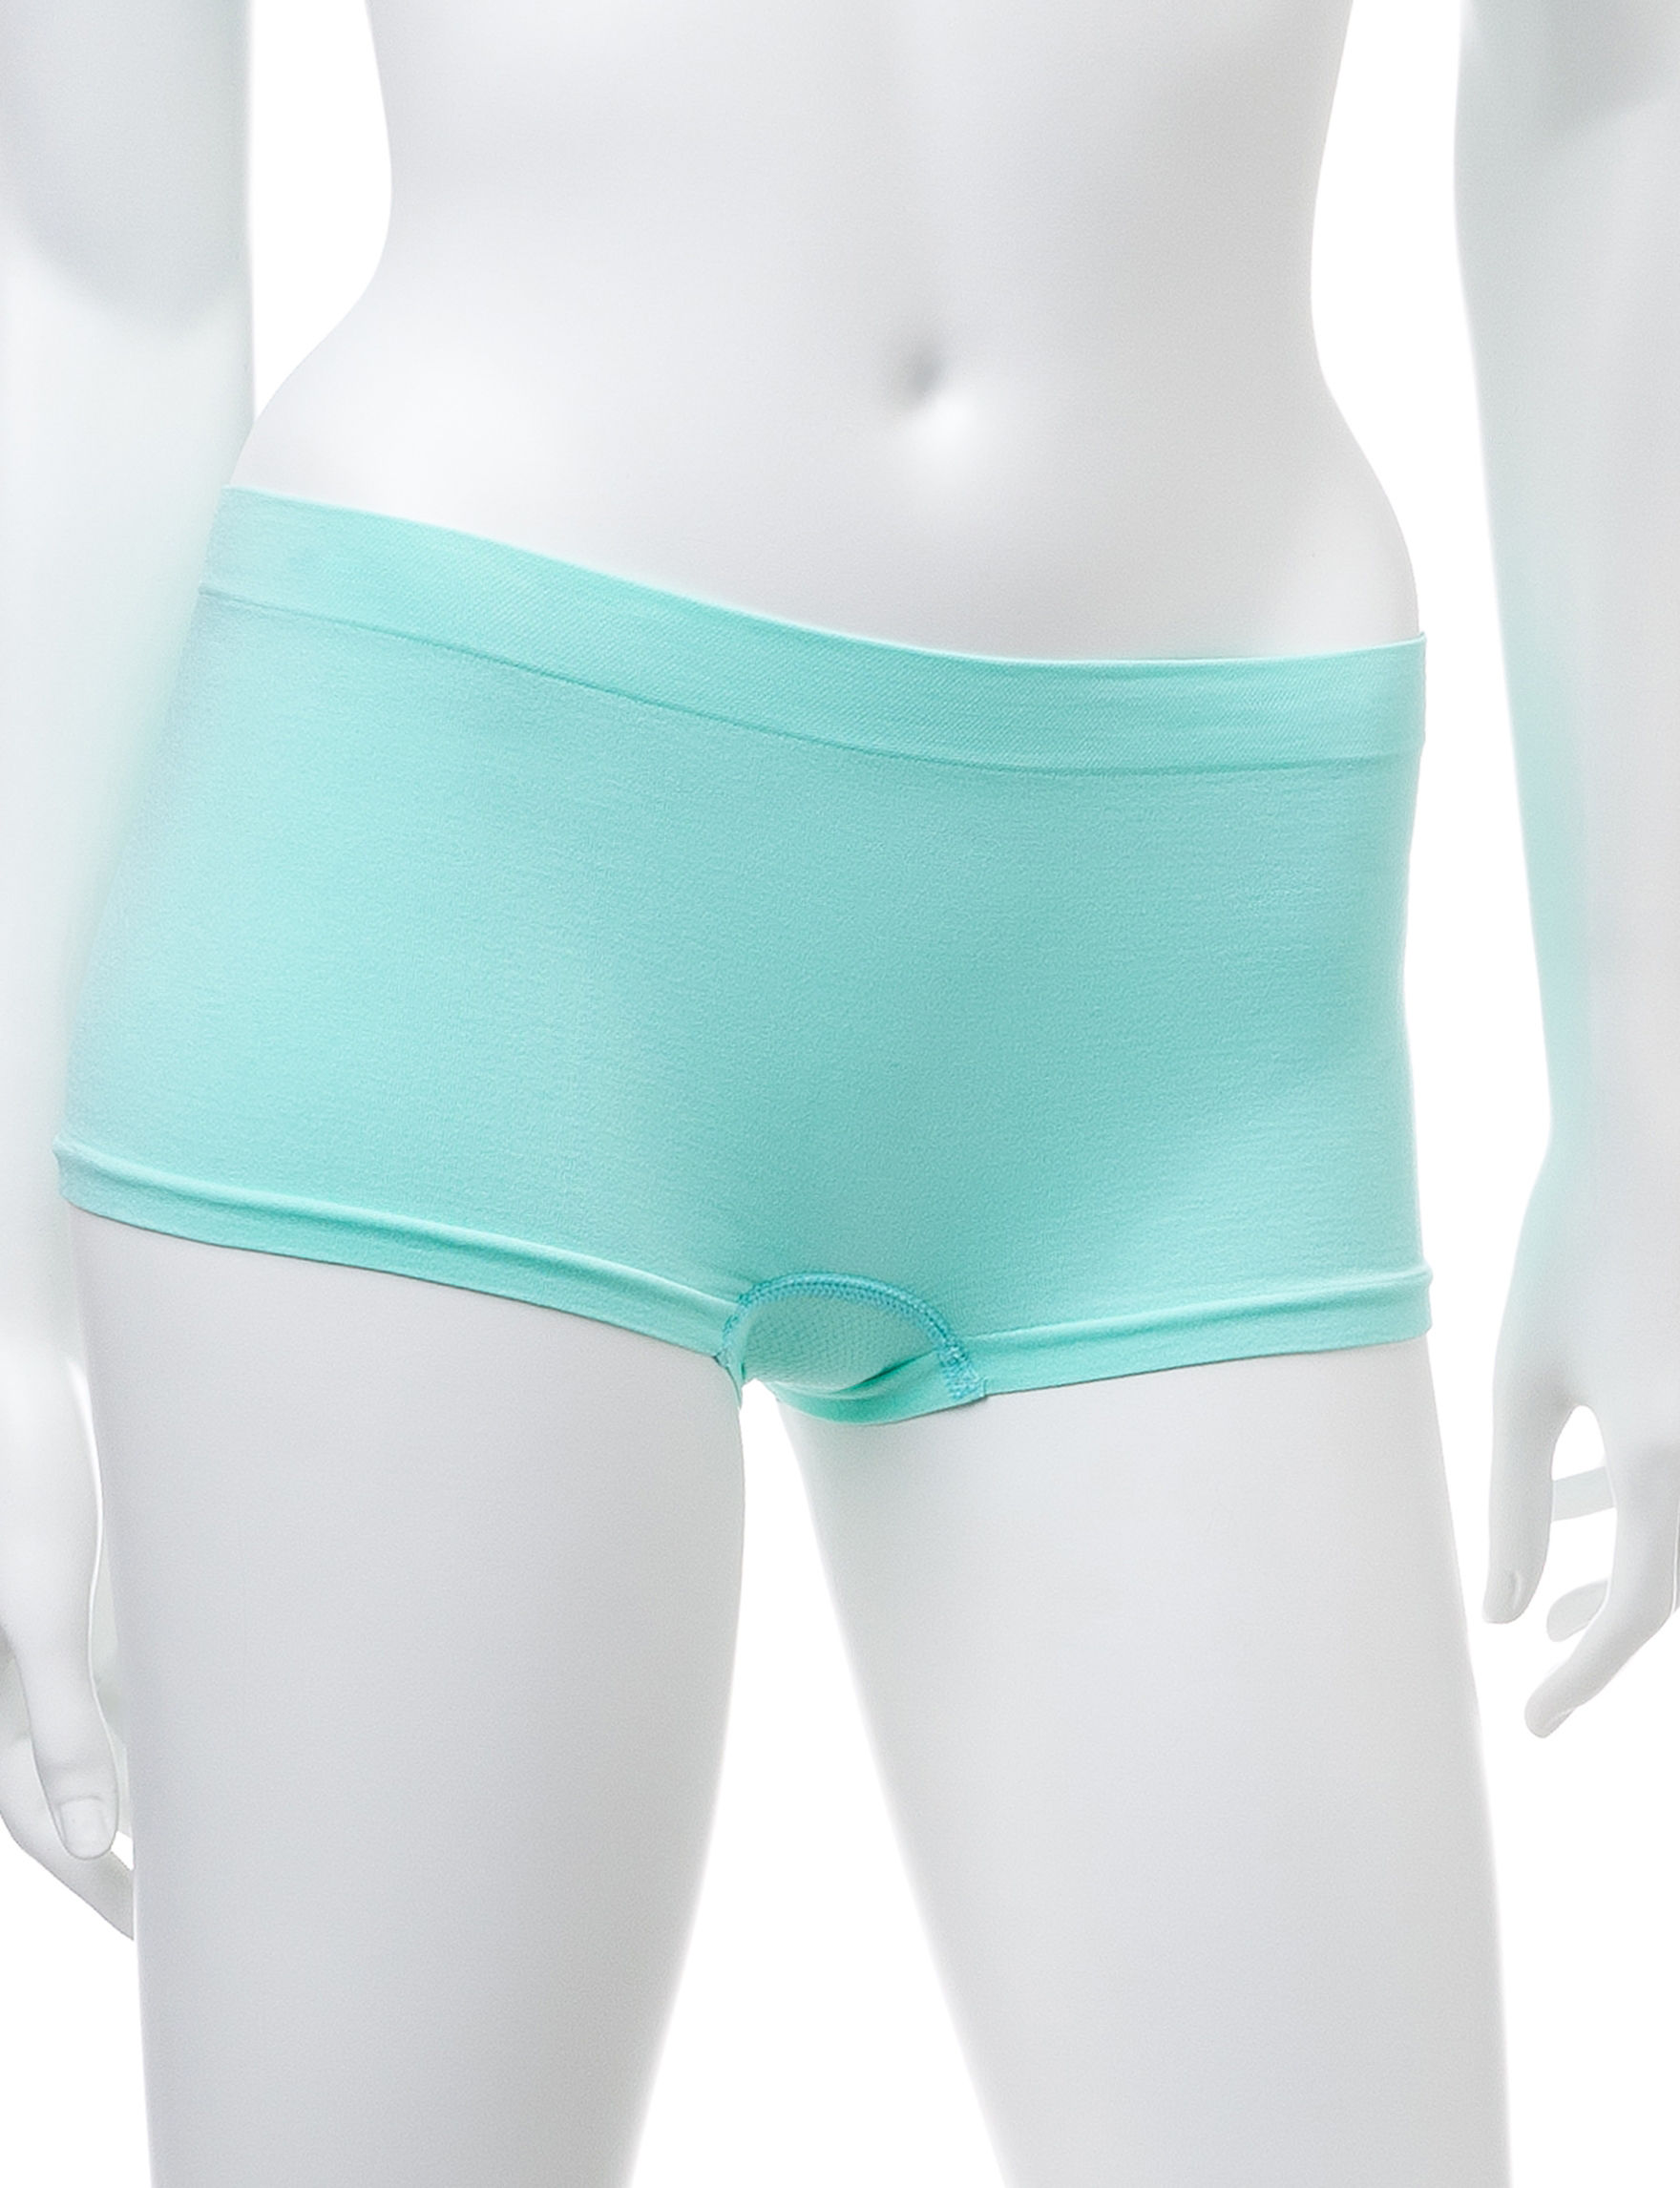 B Intimates Mint Panties Boyshort